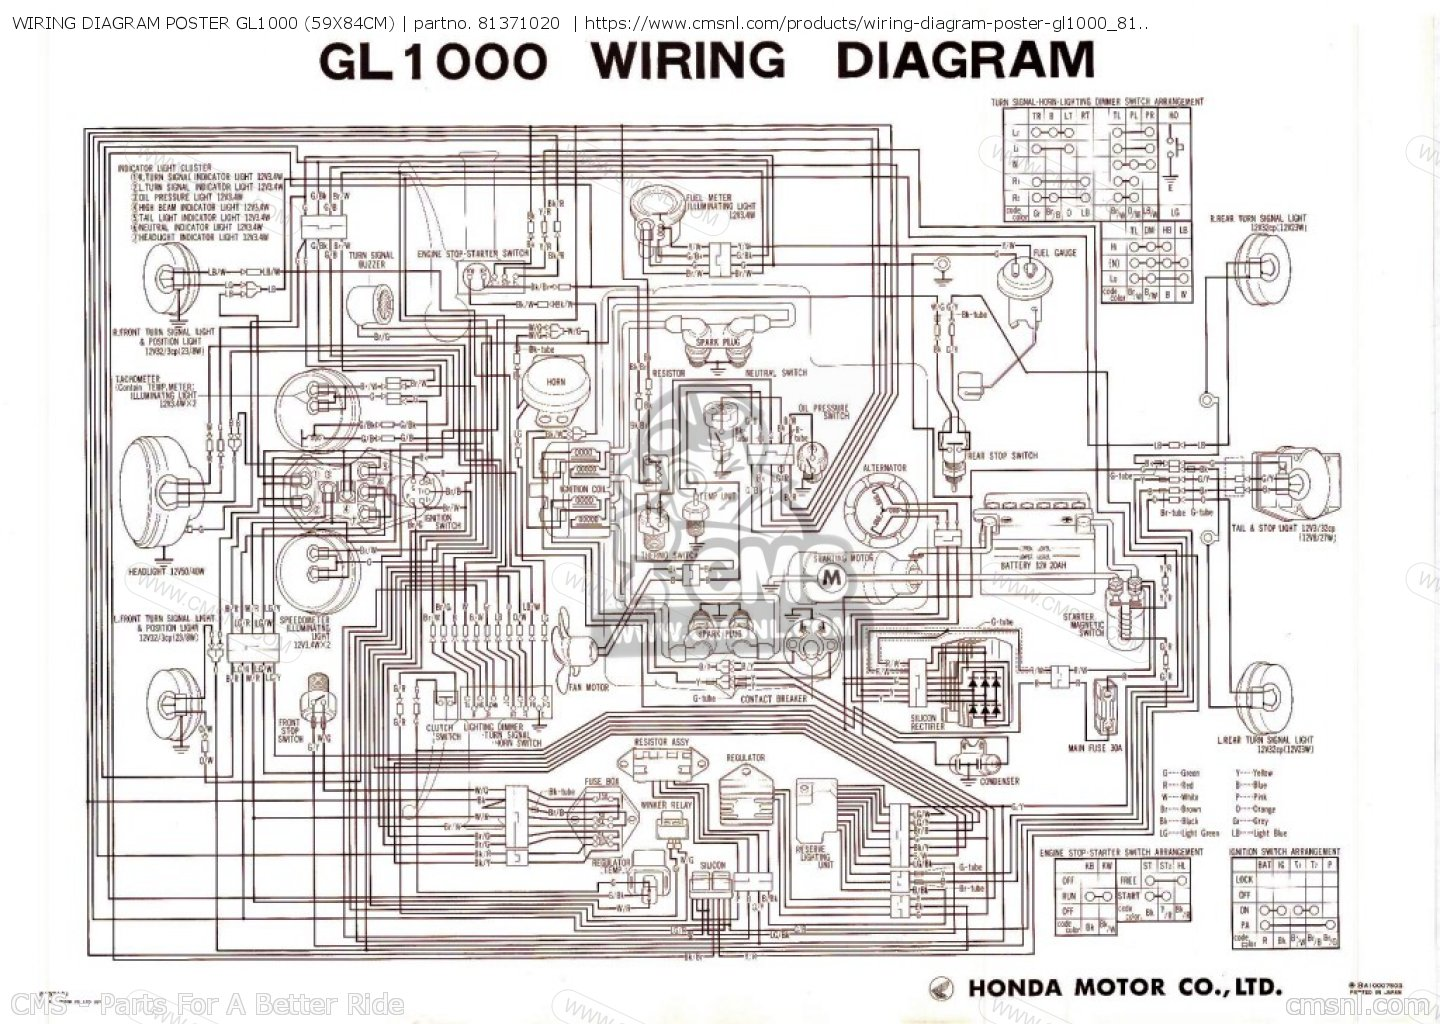 Honda Gl1000 Goldwing Wiring Diagram Books Of Subaru Ea82 Poster 59x84cm Other 81371020 1980 Gl1100